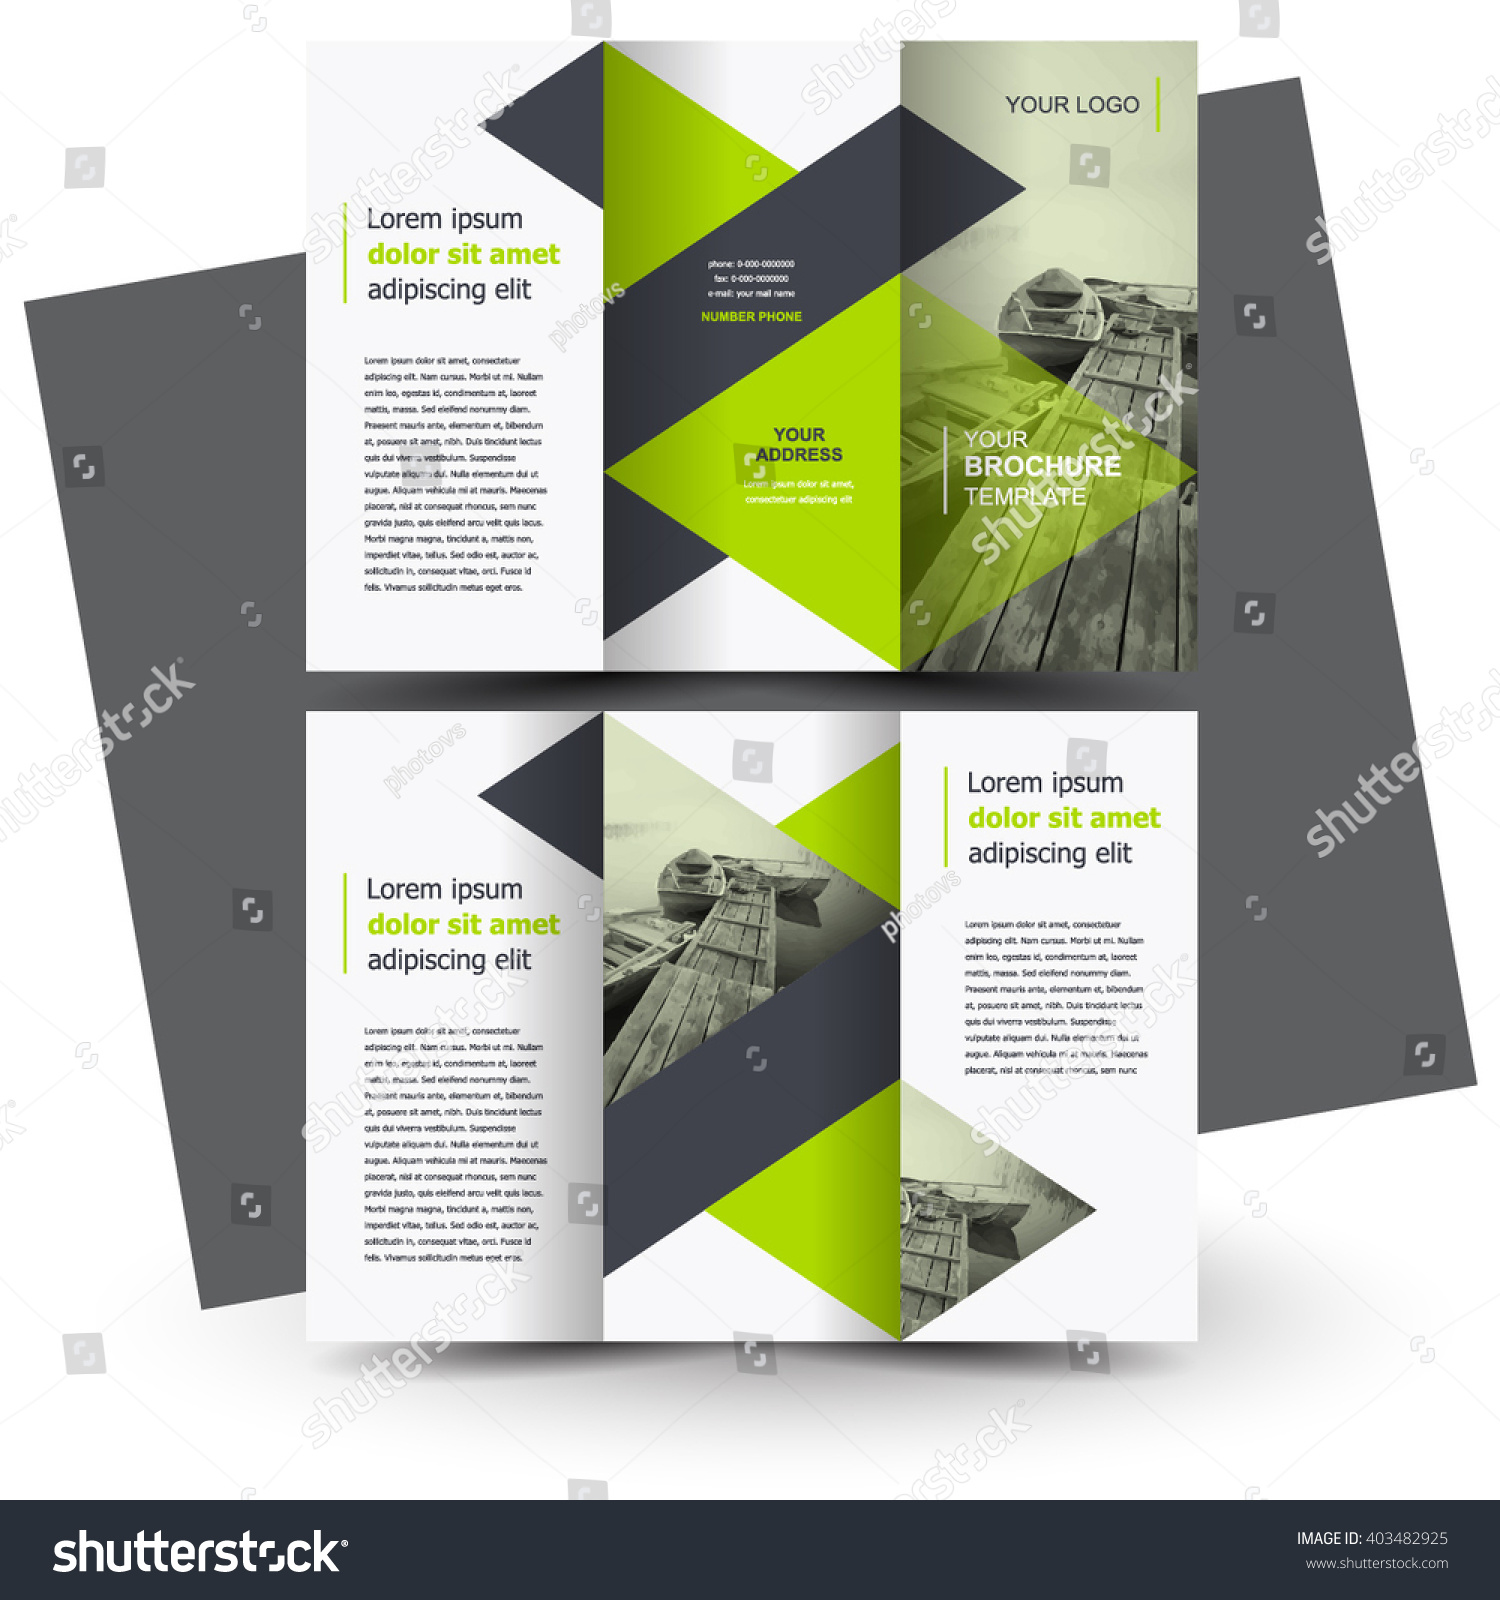 Creative Brochure Design Templates: Brochure Design, Brochure Template, Creative Tri-Fold